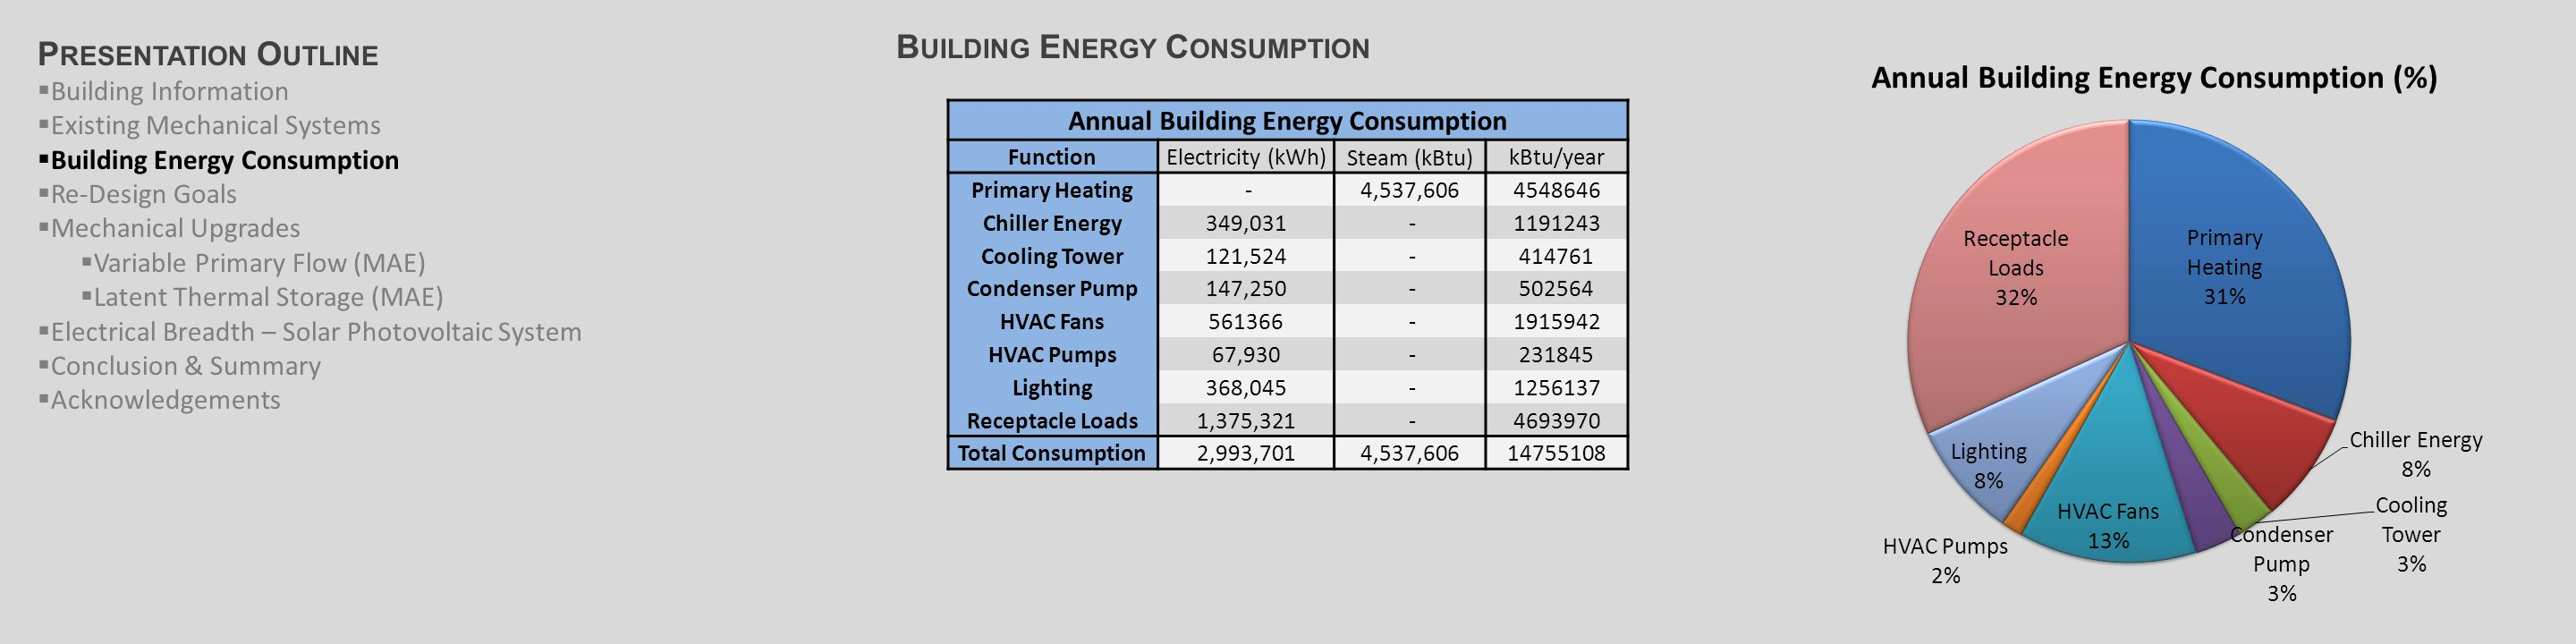 B UILDING E NERGY C ONSUMPTION Electricity (PECO - HT) Customer Monthly Charge$291.43 Charge per kWh [Up to 150 kWh]$0.0635 Charge per kWh [Up to 7,500,000 kWh]$0.0442 Charge per additional kWh$0.0253 Demand Charge per kW$8.79 District Steam (Trigen Rate S) Winter (October - May) $/lb Consumption: Charge per first 100 Mlbs$29.08 Consumption: Charge per Additional Mlbs$28.17 Demand: Charge per first 300 lb/hr$1.84 Demand: Charge per next 39,700 lb/hr$1.24 Demand: Chare per Additional lbs/hr$1.09 Summer (June-September) Consumption: Charge per first 100 Mlbs$27.78 Consumption: Charge per Additional Mlbs$26.87 Demand: Charge per first 300 lb/hr$0.00 Natural Gas (Philadelphia Gas Works) Customer Monthly Charge $18.00 Cost per Therm $1.22 Annual Building Energy Consumption FunctionElectricity (kWh) Steam (kBtu) kBtu/year Primary Heating -4,537,6064548646 Chiller Energy349,031 -1191243 Cooling Tower121,524 -414761 Condenser Pump147,250 -502564 HVAC Fans561366 -1915942 HVAC Pumps67,930 -231845 Lighting368,045 -1256137 Receptacle Loads1,375,321 -4693970 Total Consumption2,993,7014,537,60614755108 P RESENTATION O UTLINE  Building Information  Existing Mechanical Systems  Building Energy Consumption  Re-Design Goals  Mechanical Upgrades  Variable Primary Flow (MAE)  Latent Thermal Storage (MAE)  Electrical Breadth – Solar Photovoltaic System  Conclusion & Summary  Acknowledgements